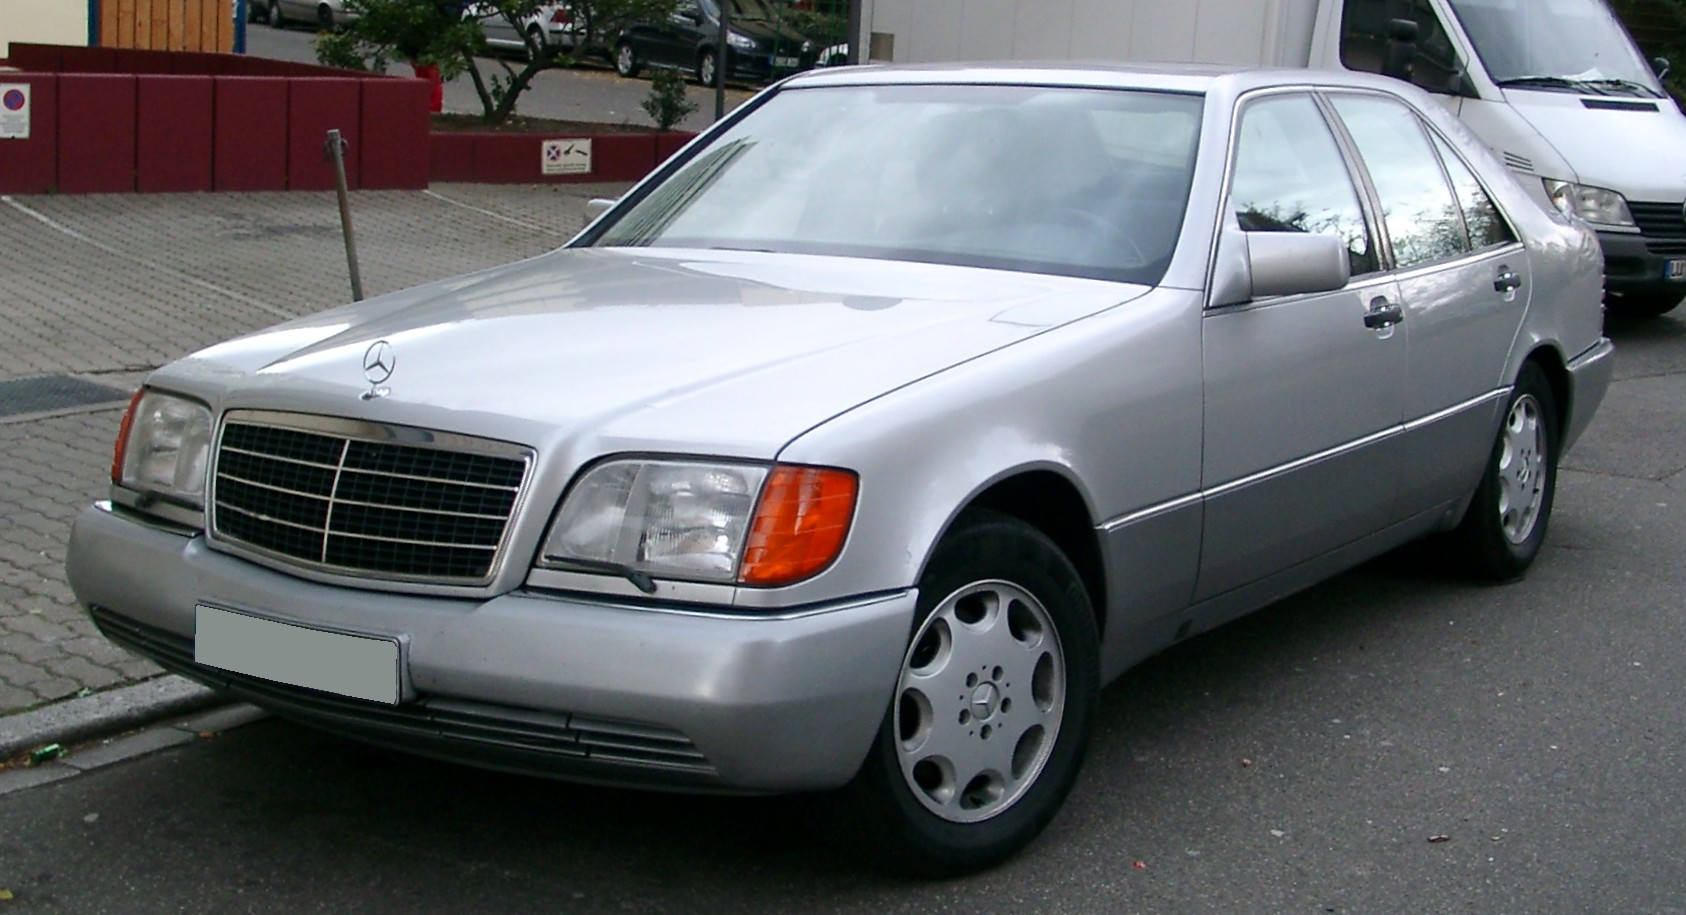 Benz s class w140 600sel or s600 m120 394 hp w140 information - As With Its Predecessor The W140